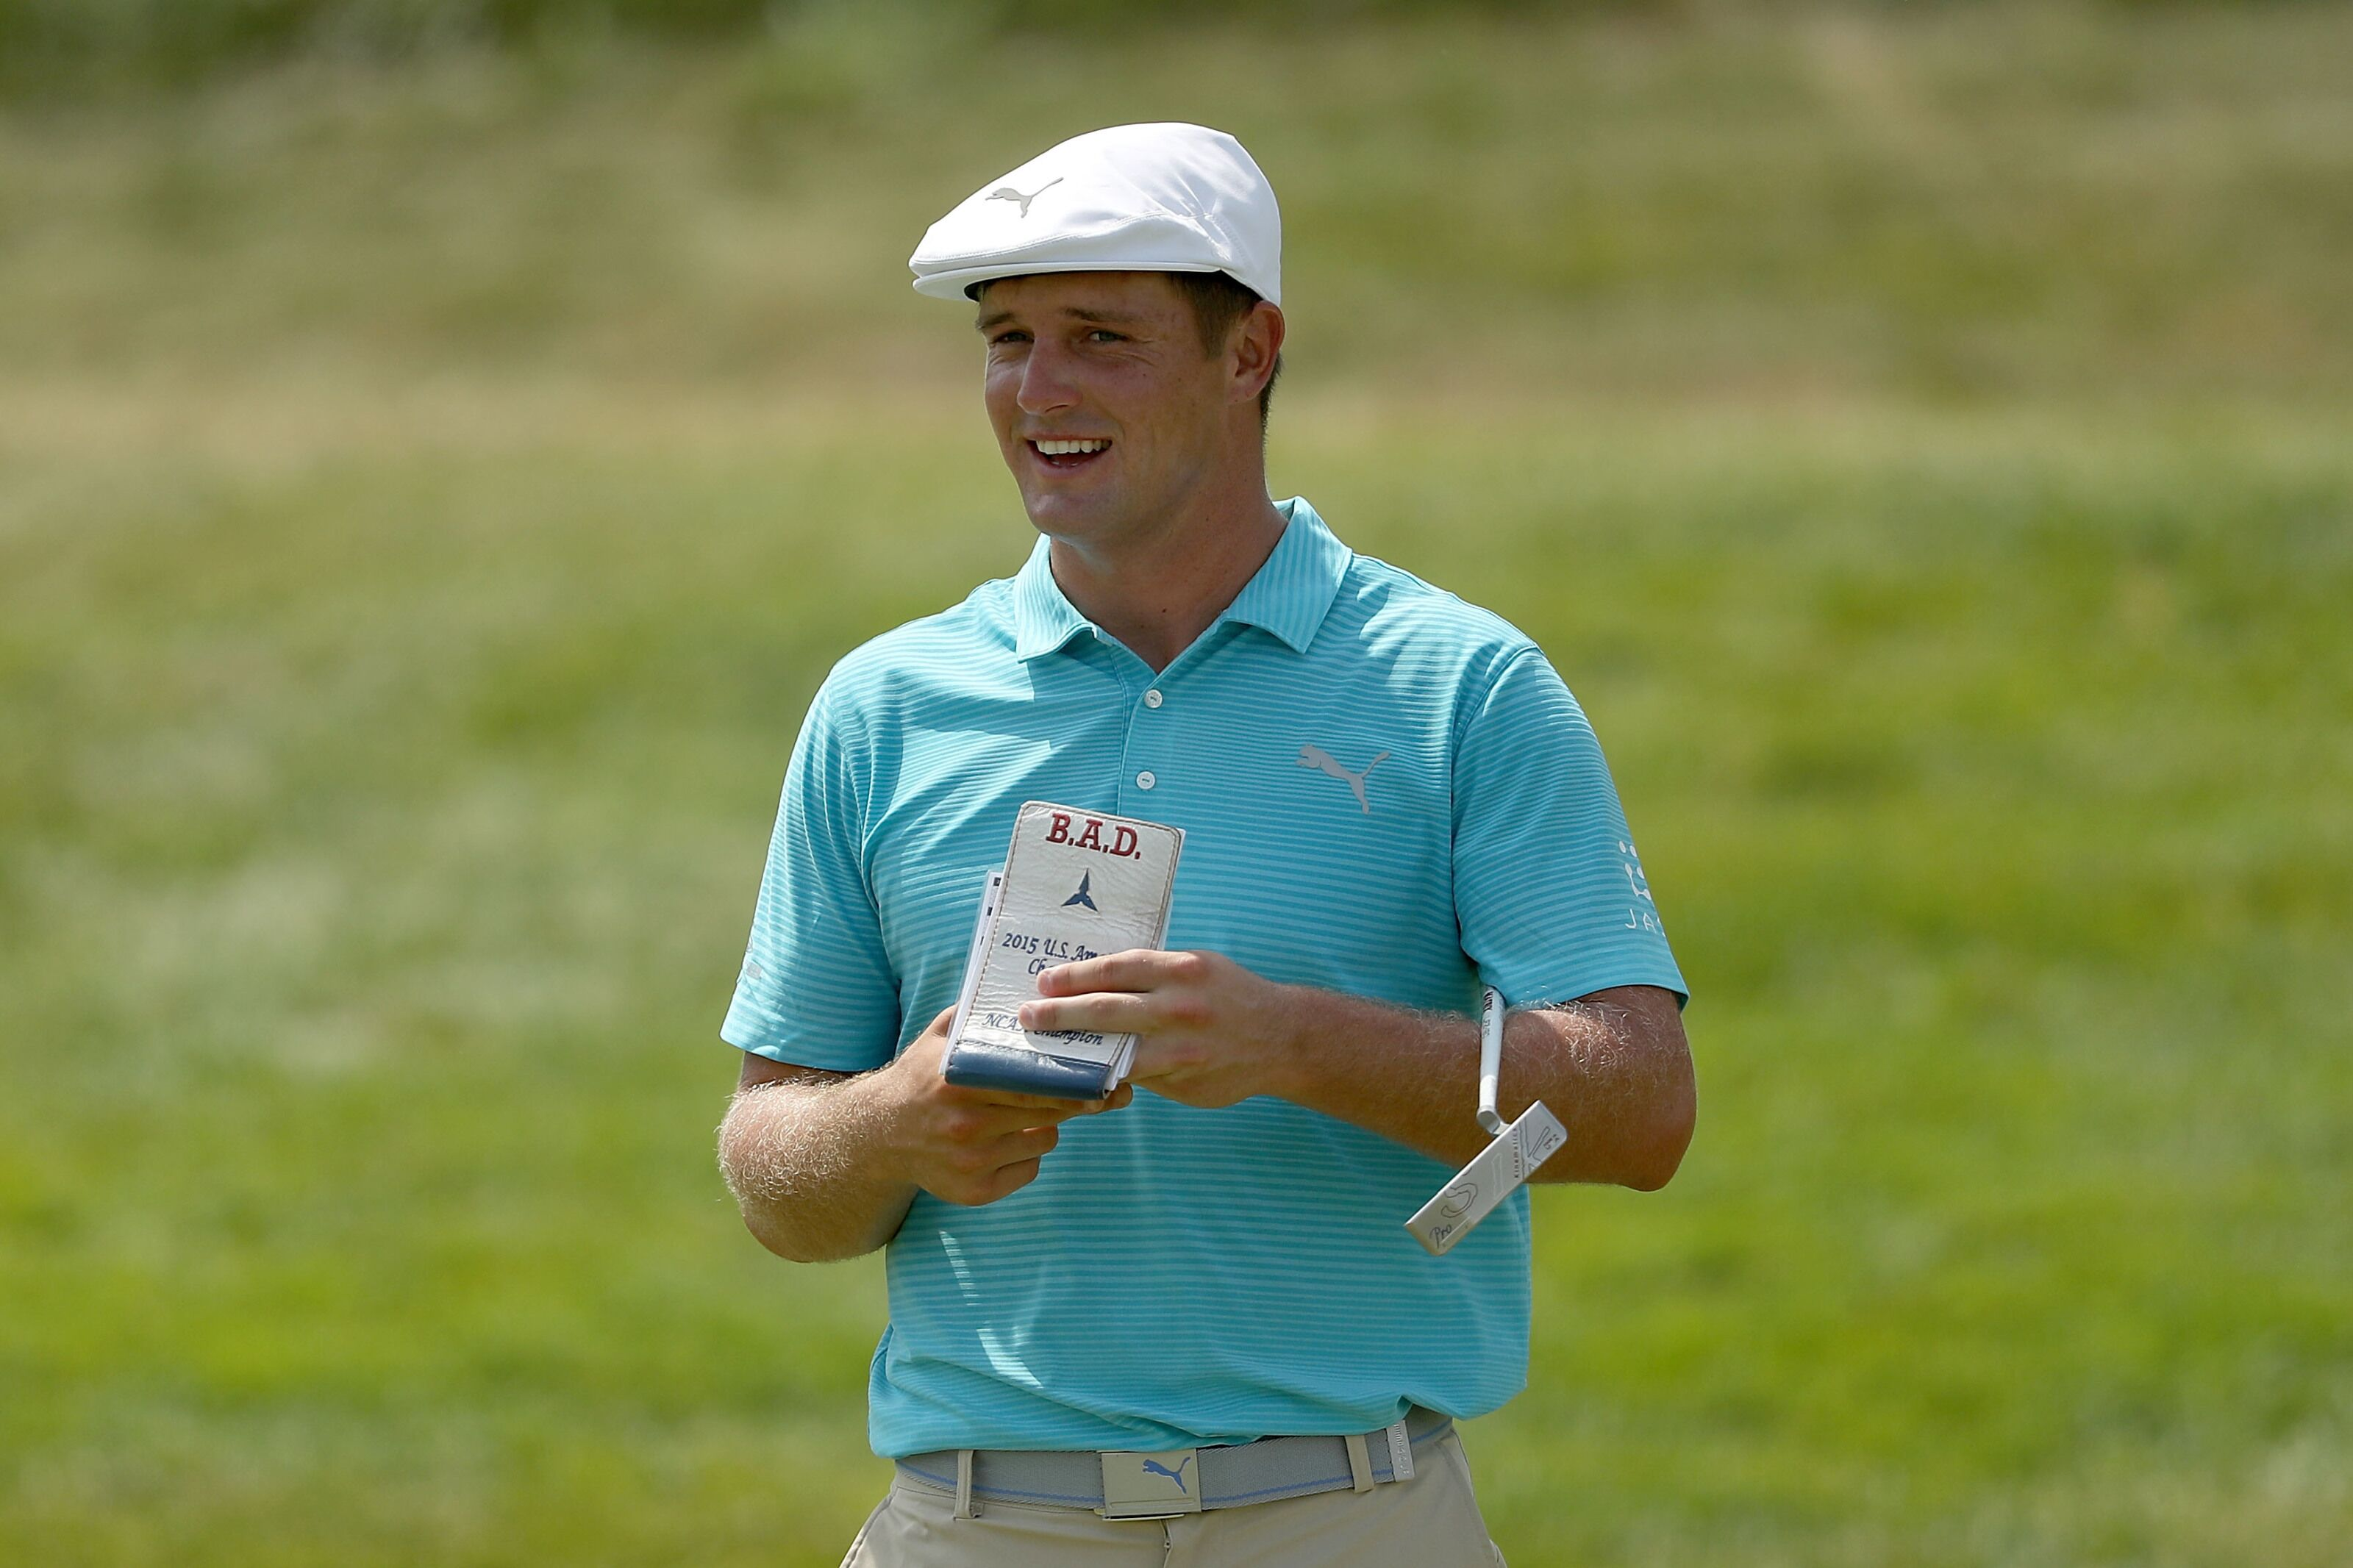 a42b21c6d1d What Bryson DeChambeau Learned from Winning The John Deere Classic